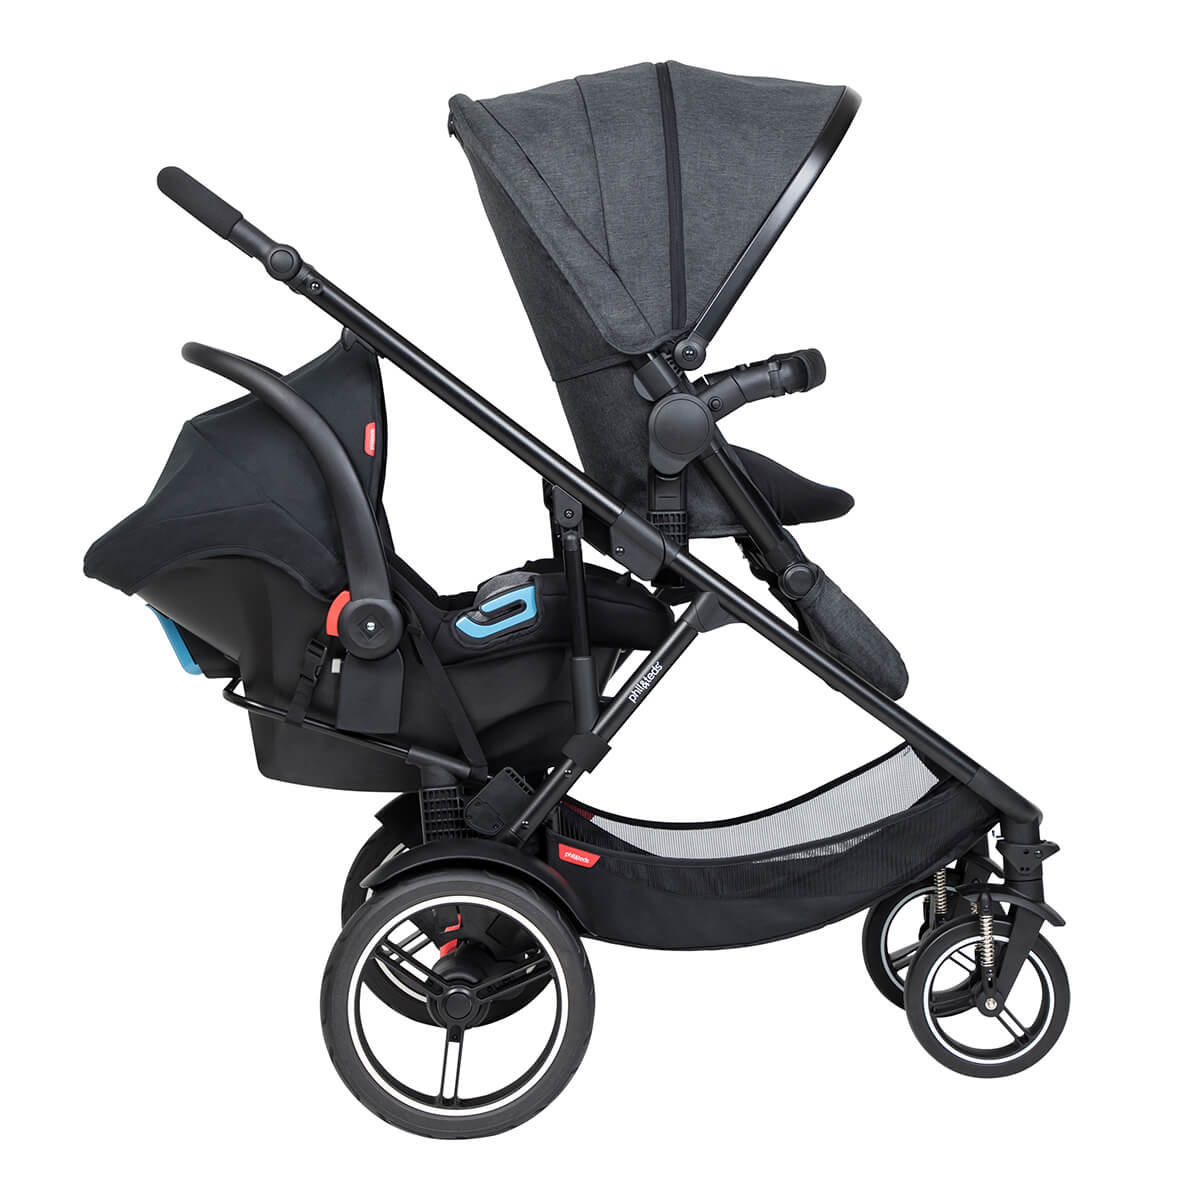 https://cdn.accentuate.io/4384006013025/19793939726506/philteds-voyager-buggy-in-forward-facing-mode-with-travel-system-in-the-rear-v1626147759584.jpg?1200x1200